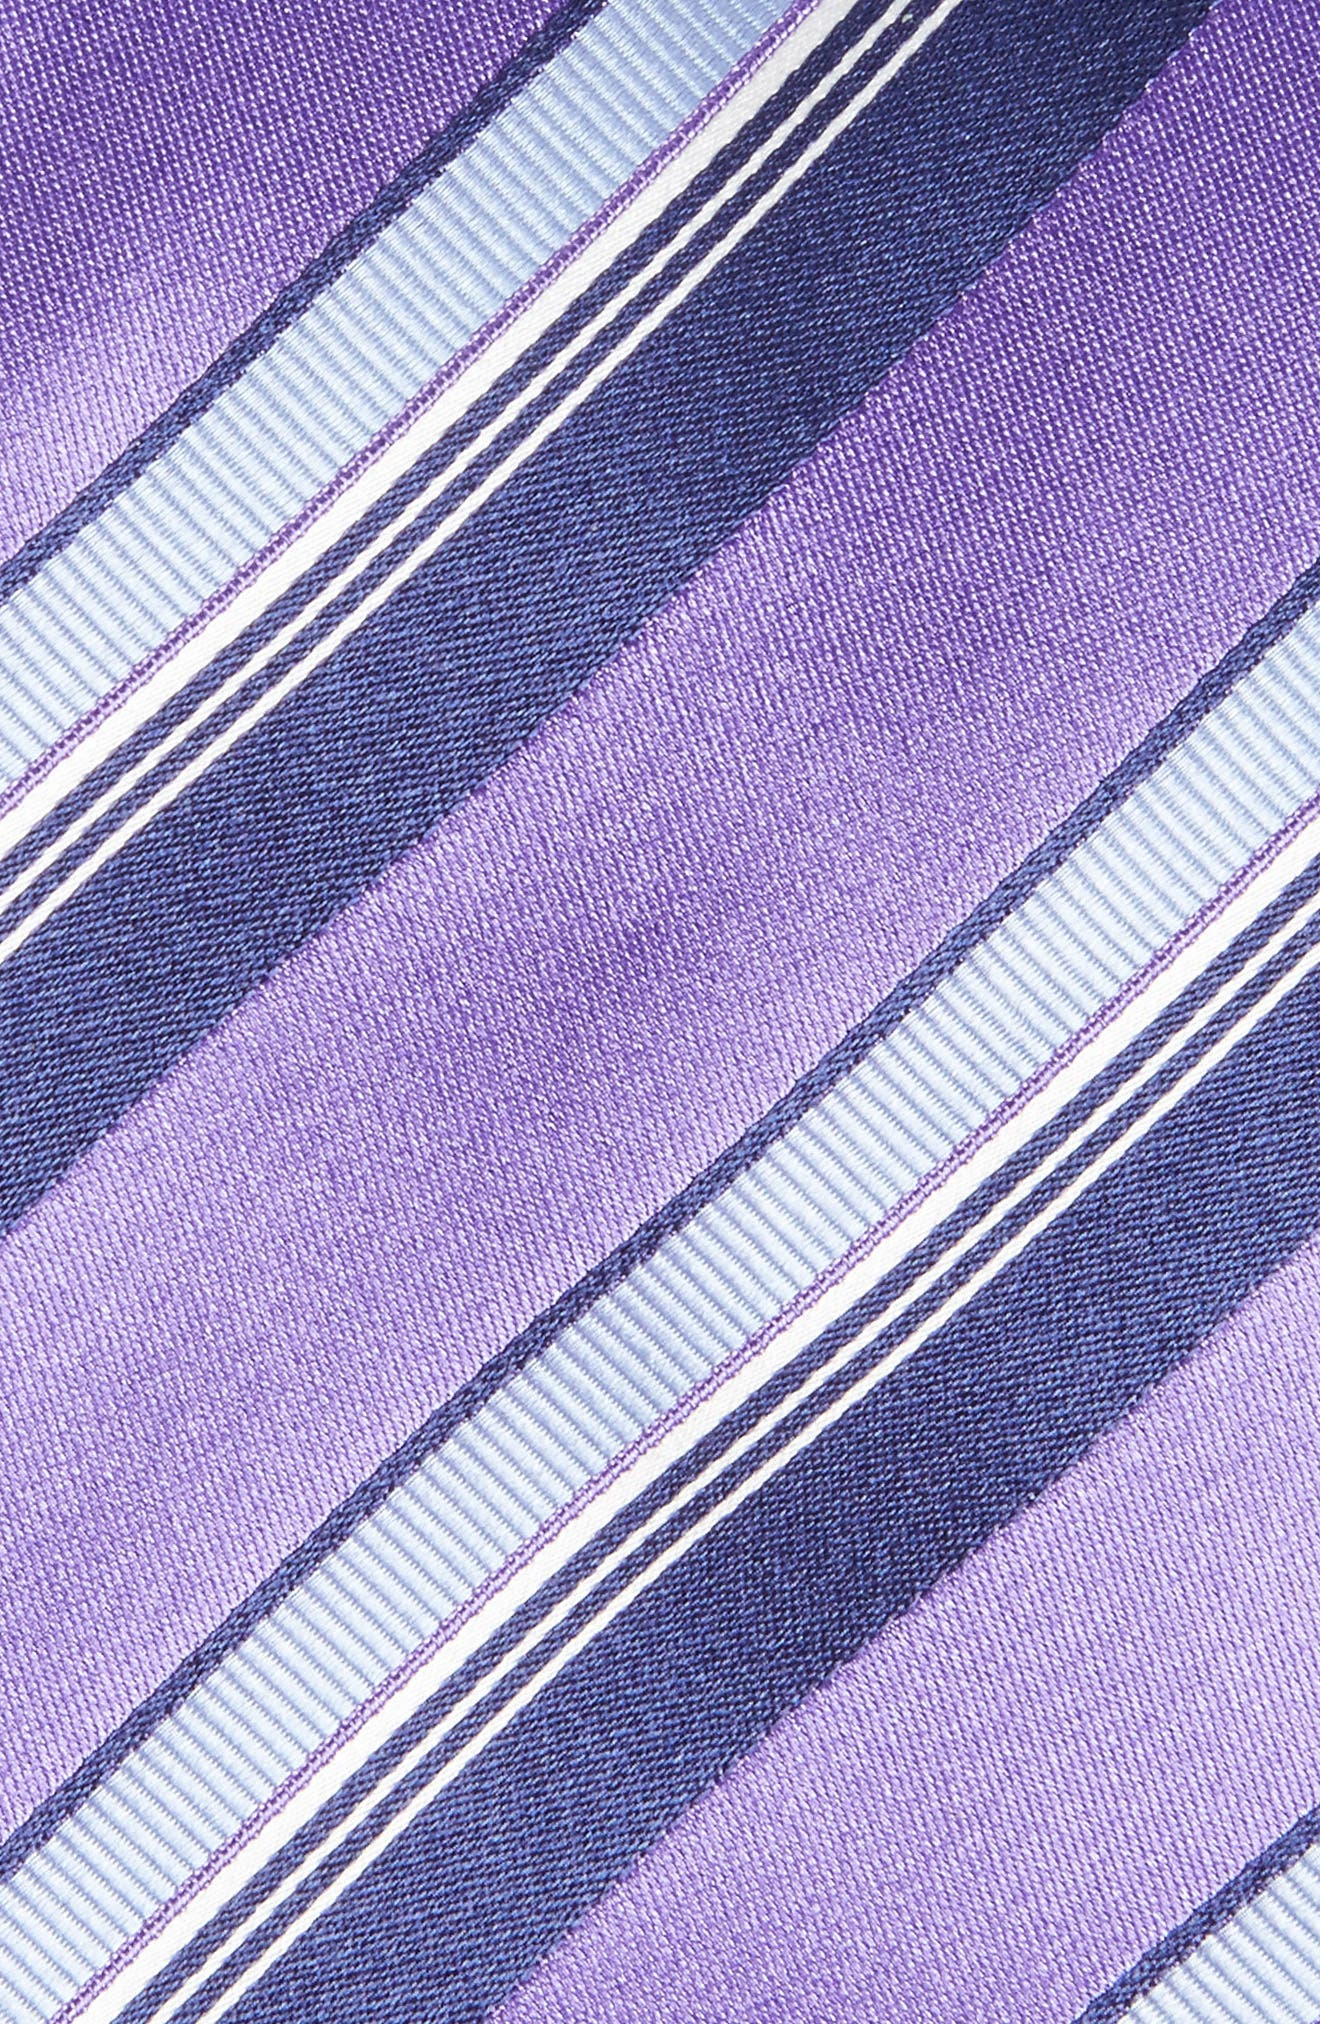 Stripe Silk Tie,                             Alternate thumbnail 2, color,                             500